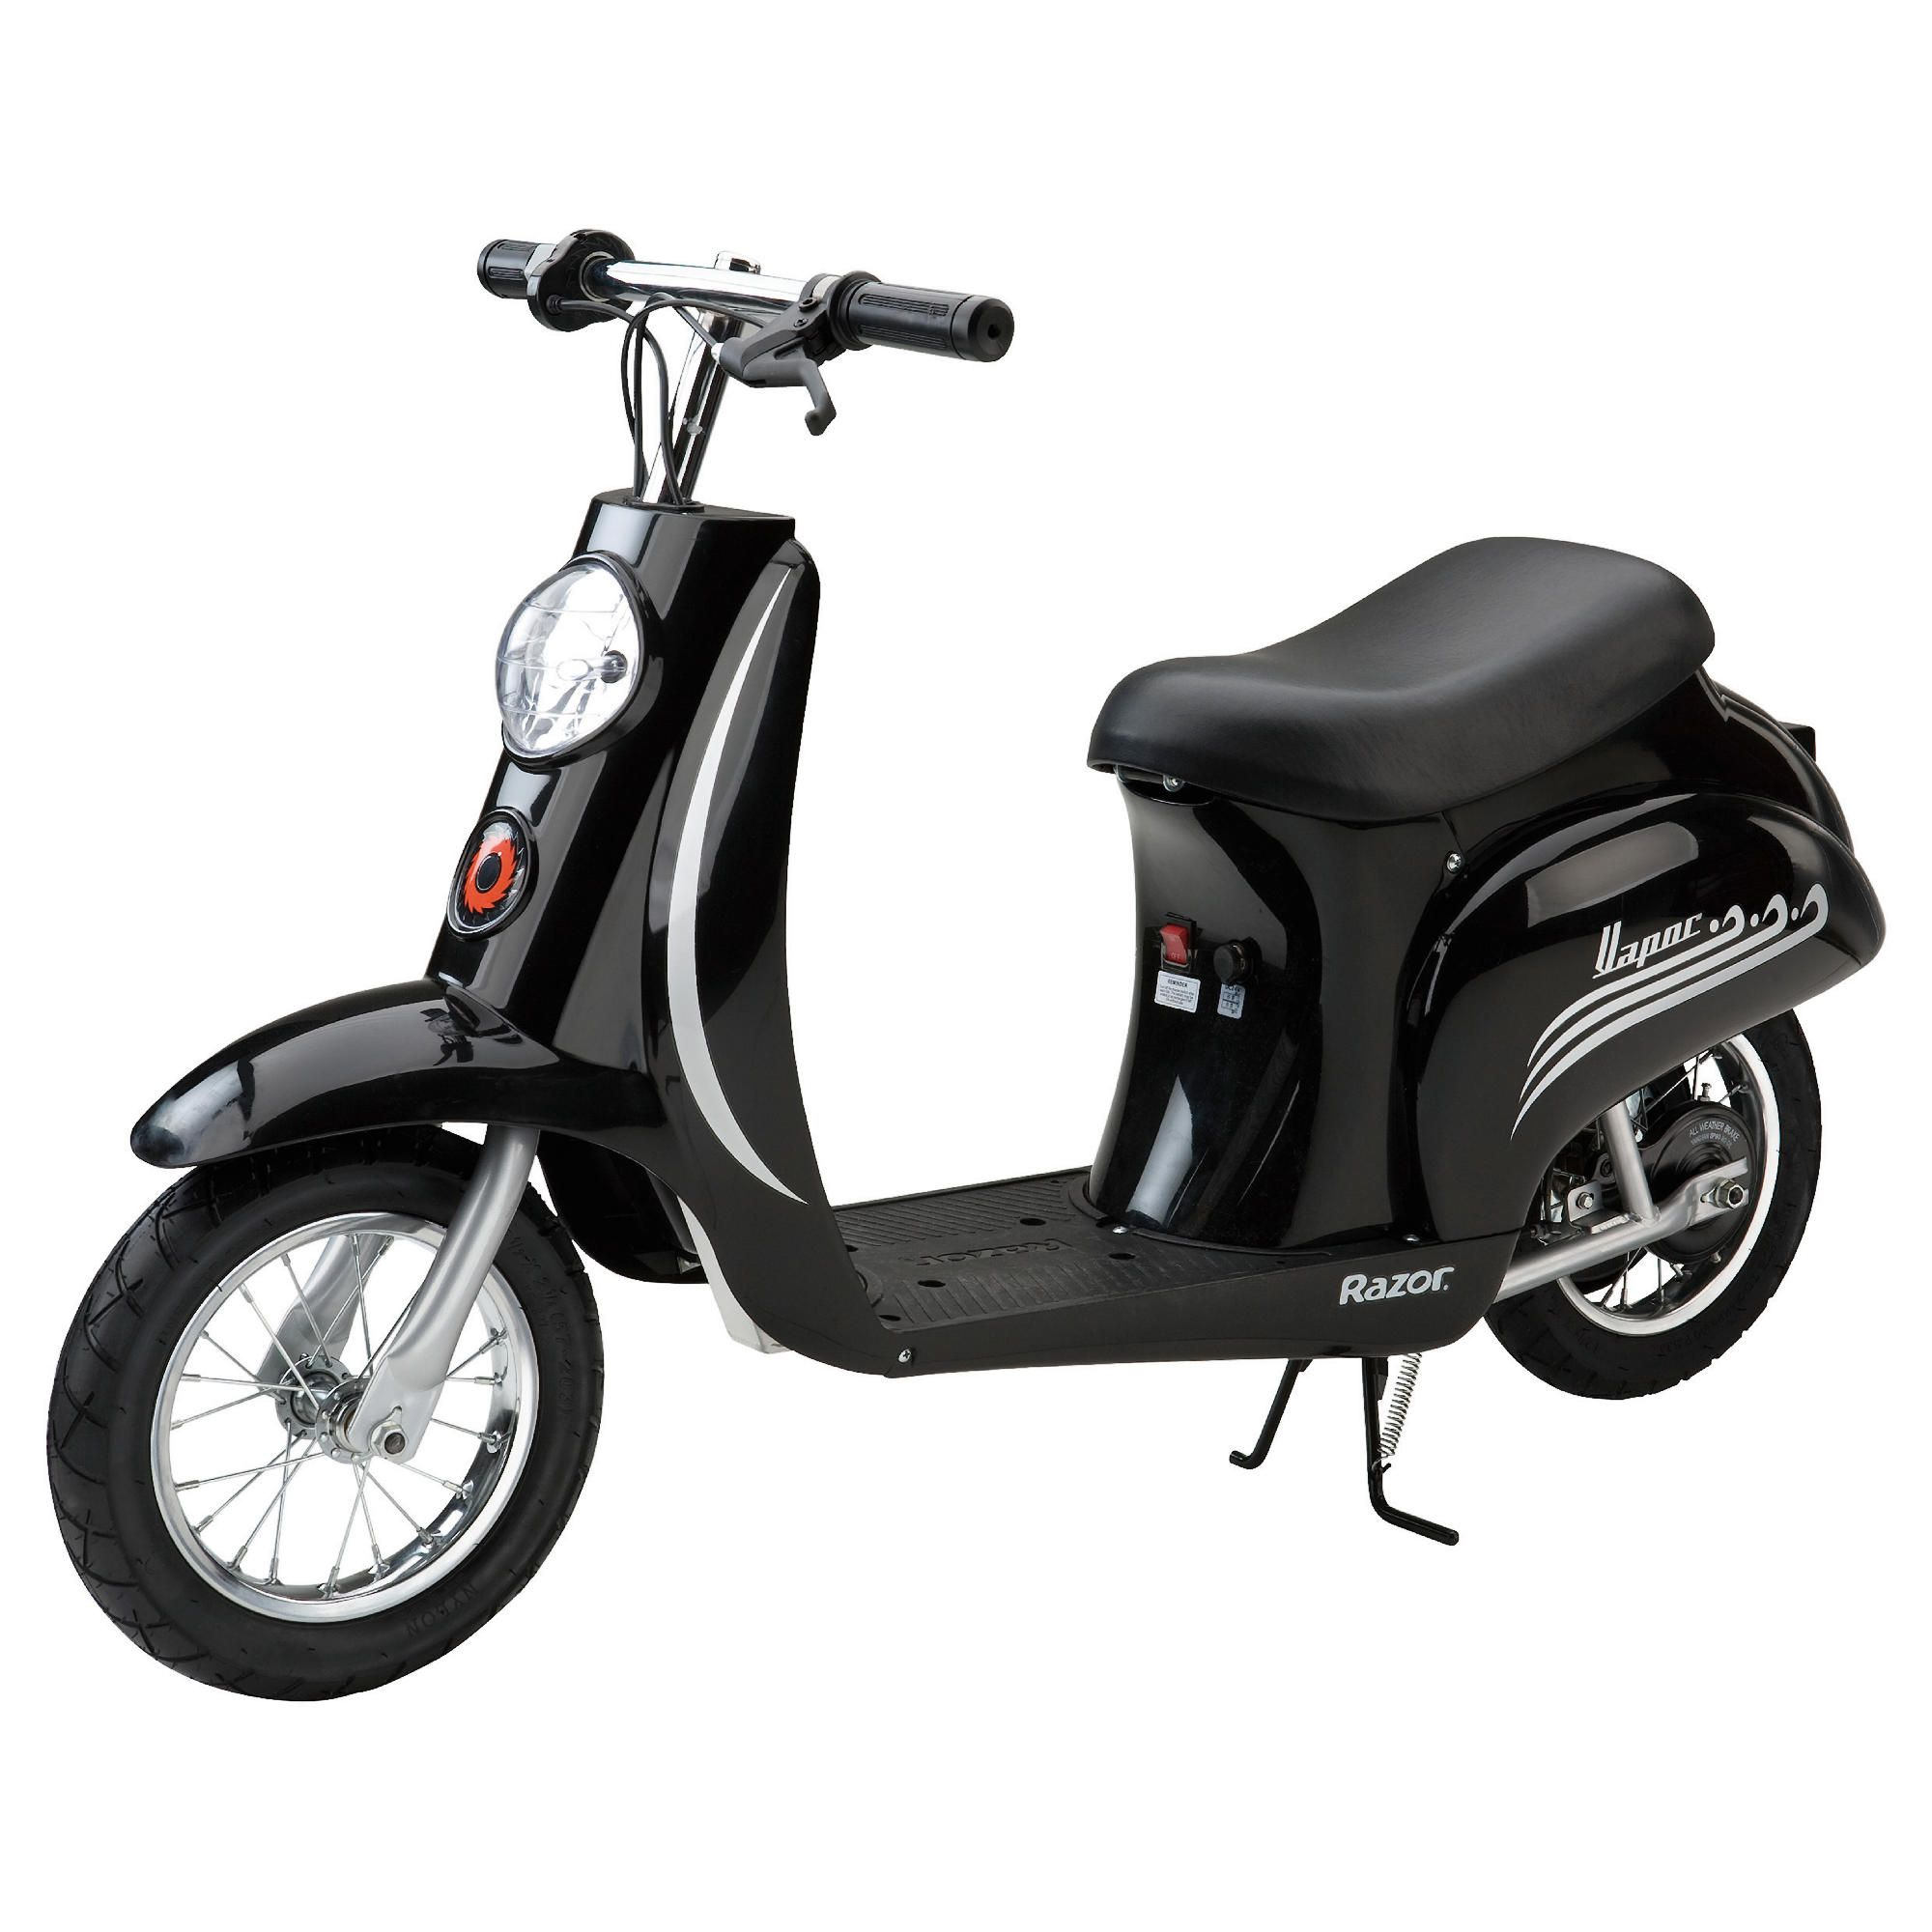 Razor Pocket Mod Electric Scooter, Black at Tesco Direct